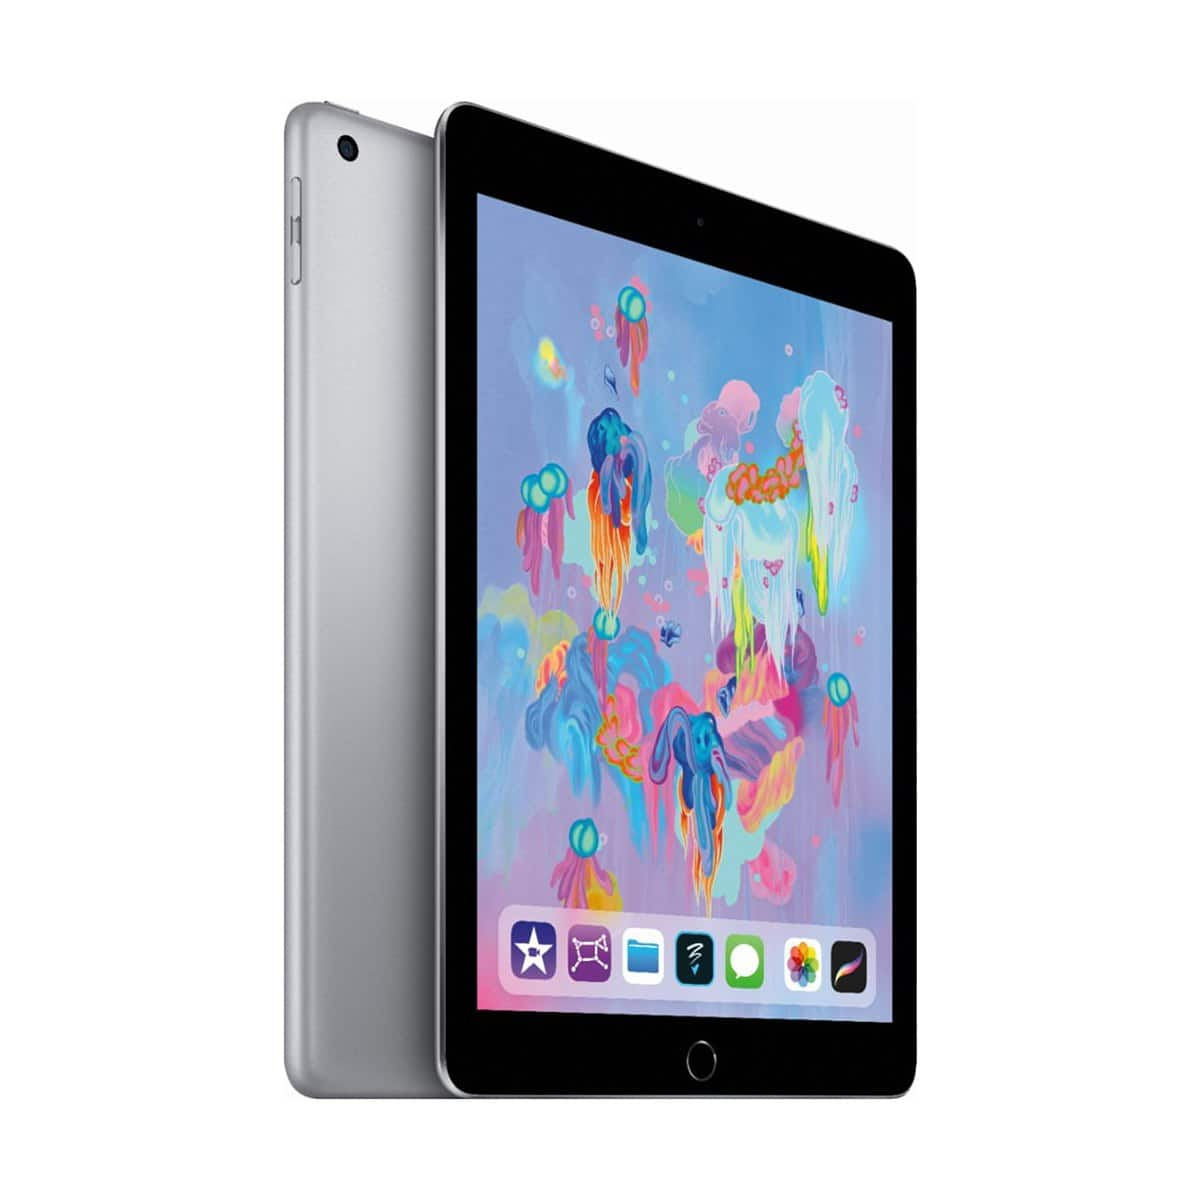 "32GB Apple iPad 9.7"" WiFi Tablet (Latest Model) for $254 + Free Shipping"